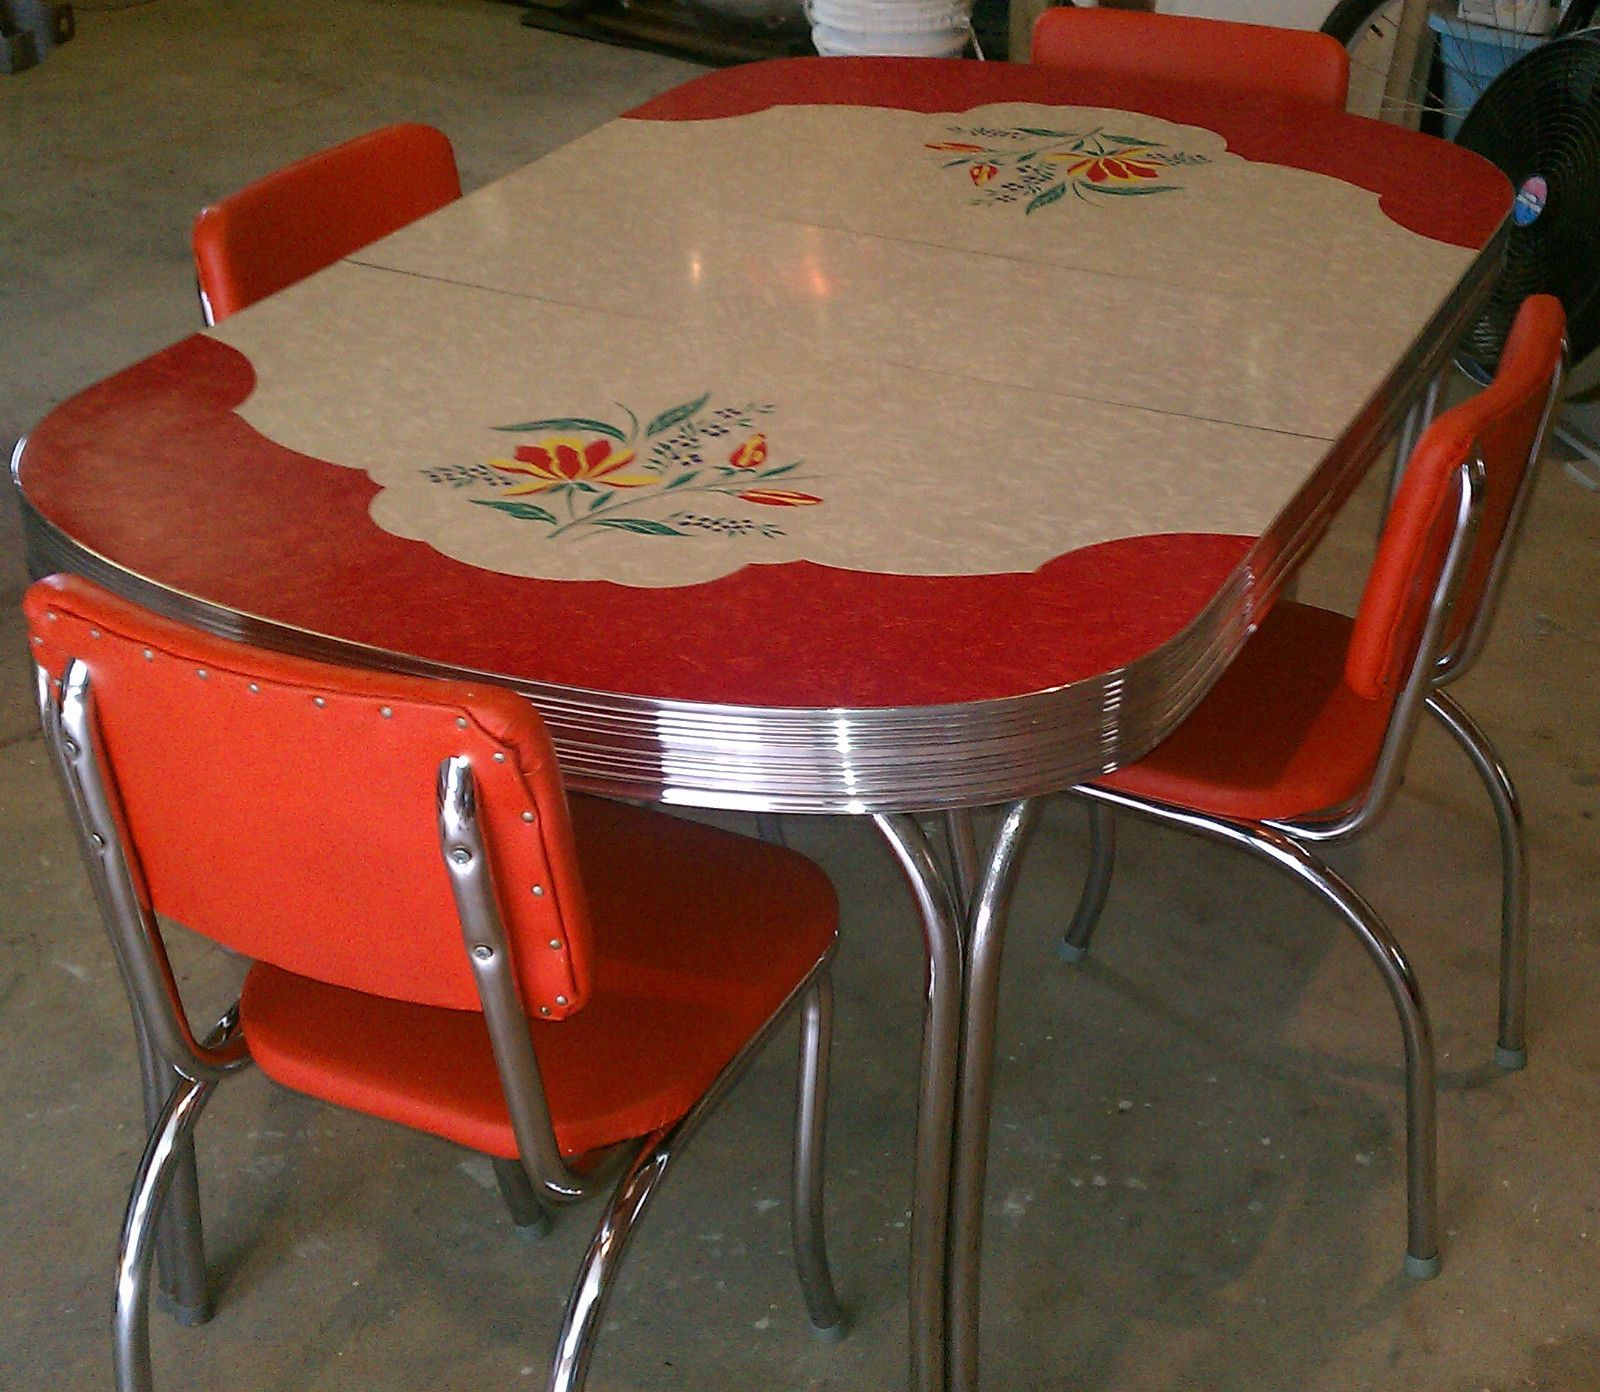 Vintage kitchen formica table 4 chairs chrome orange red for White kitchen table set